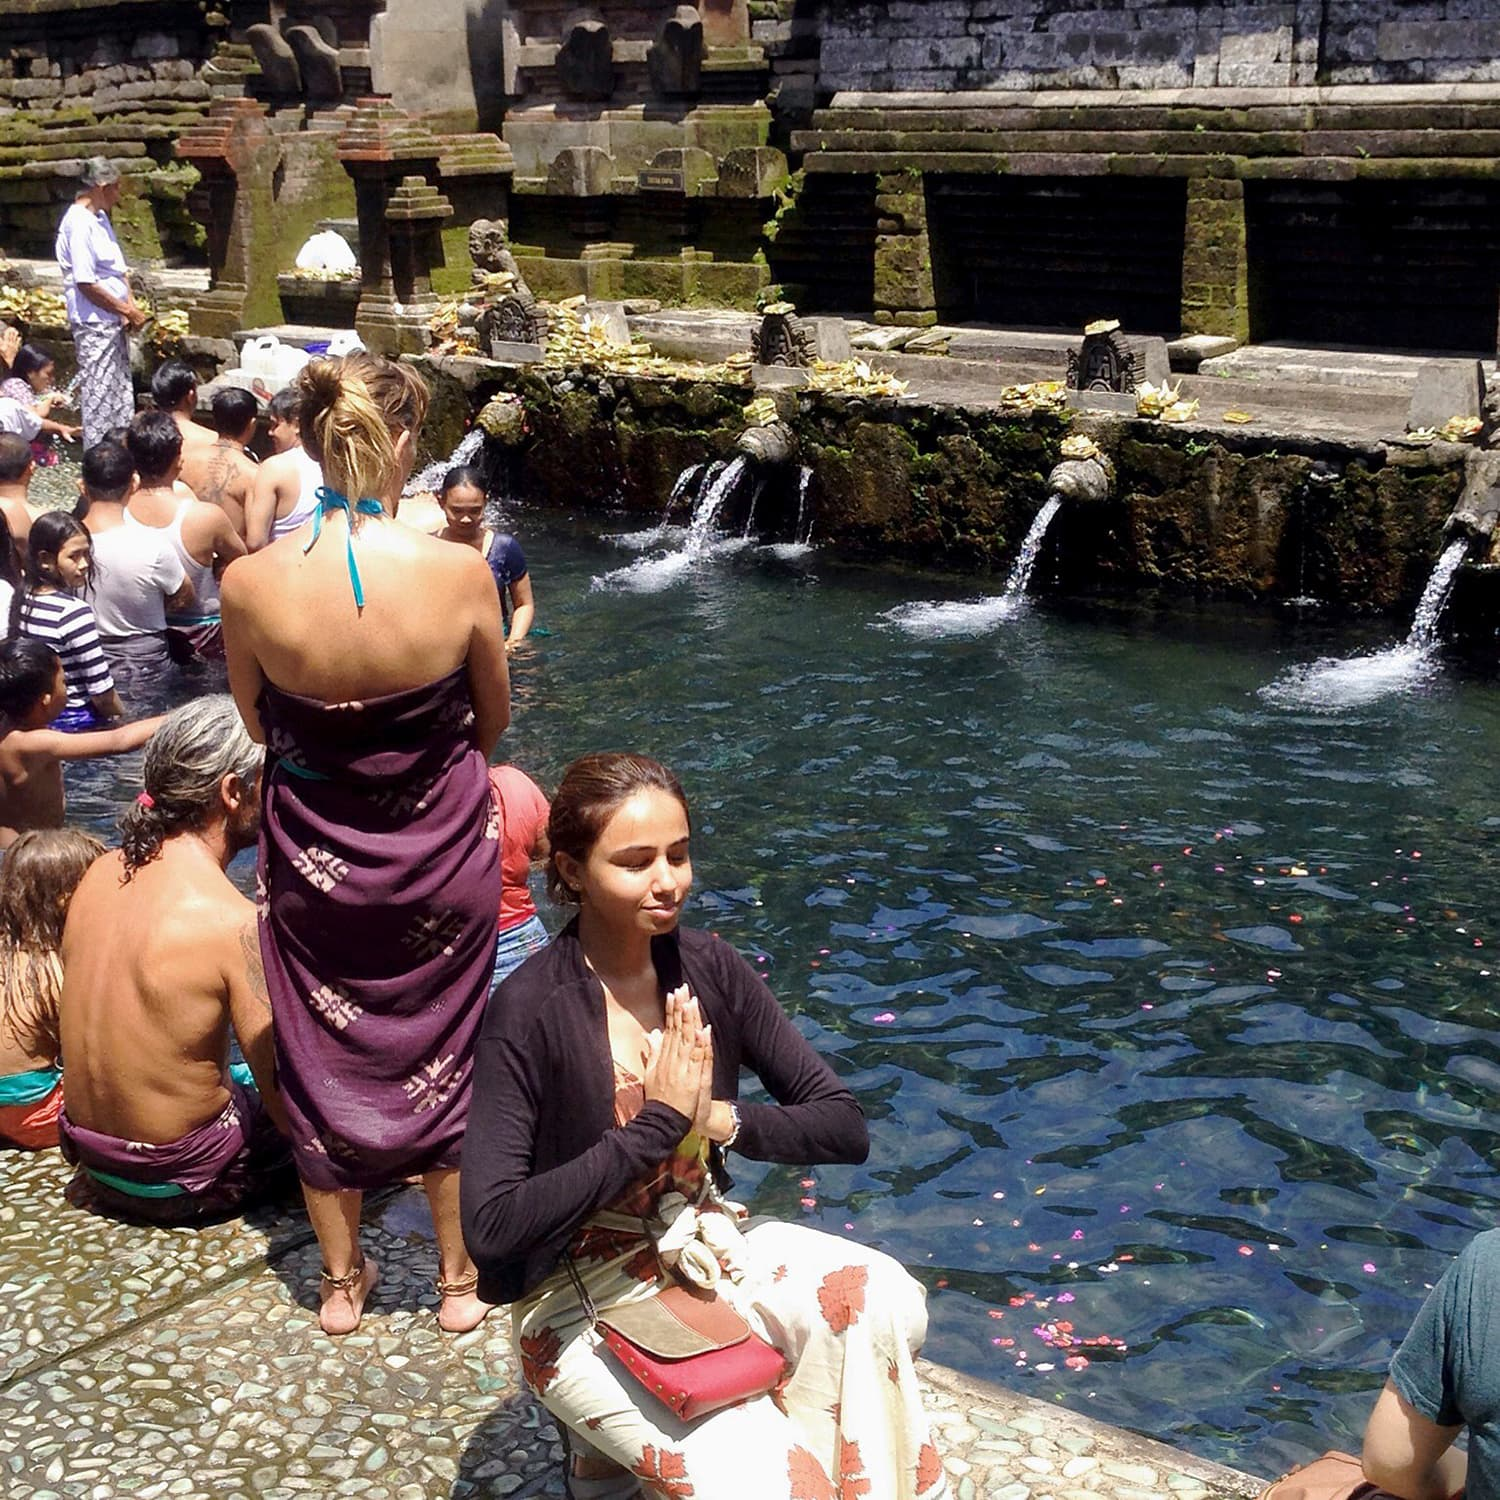 At a Hindu temple located in Pura Tirtha Empul, Tampaksiring, East Bali famous for the holy springwater bath.